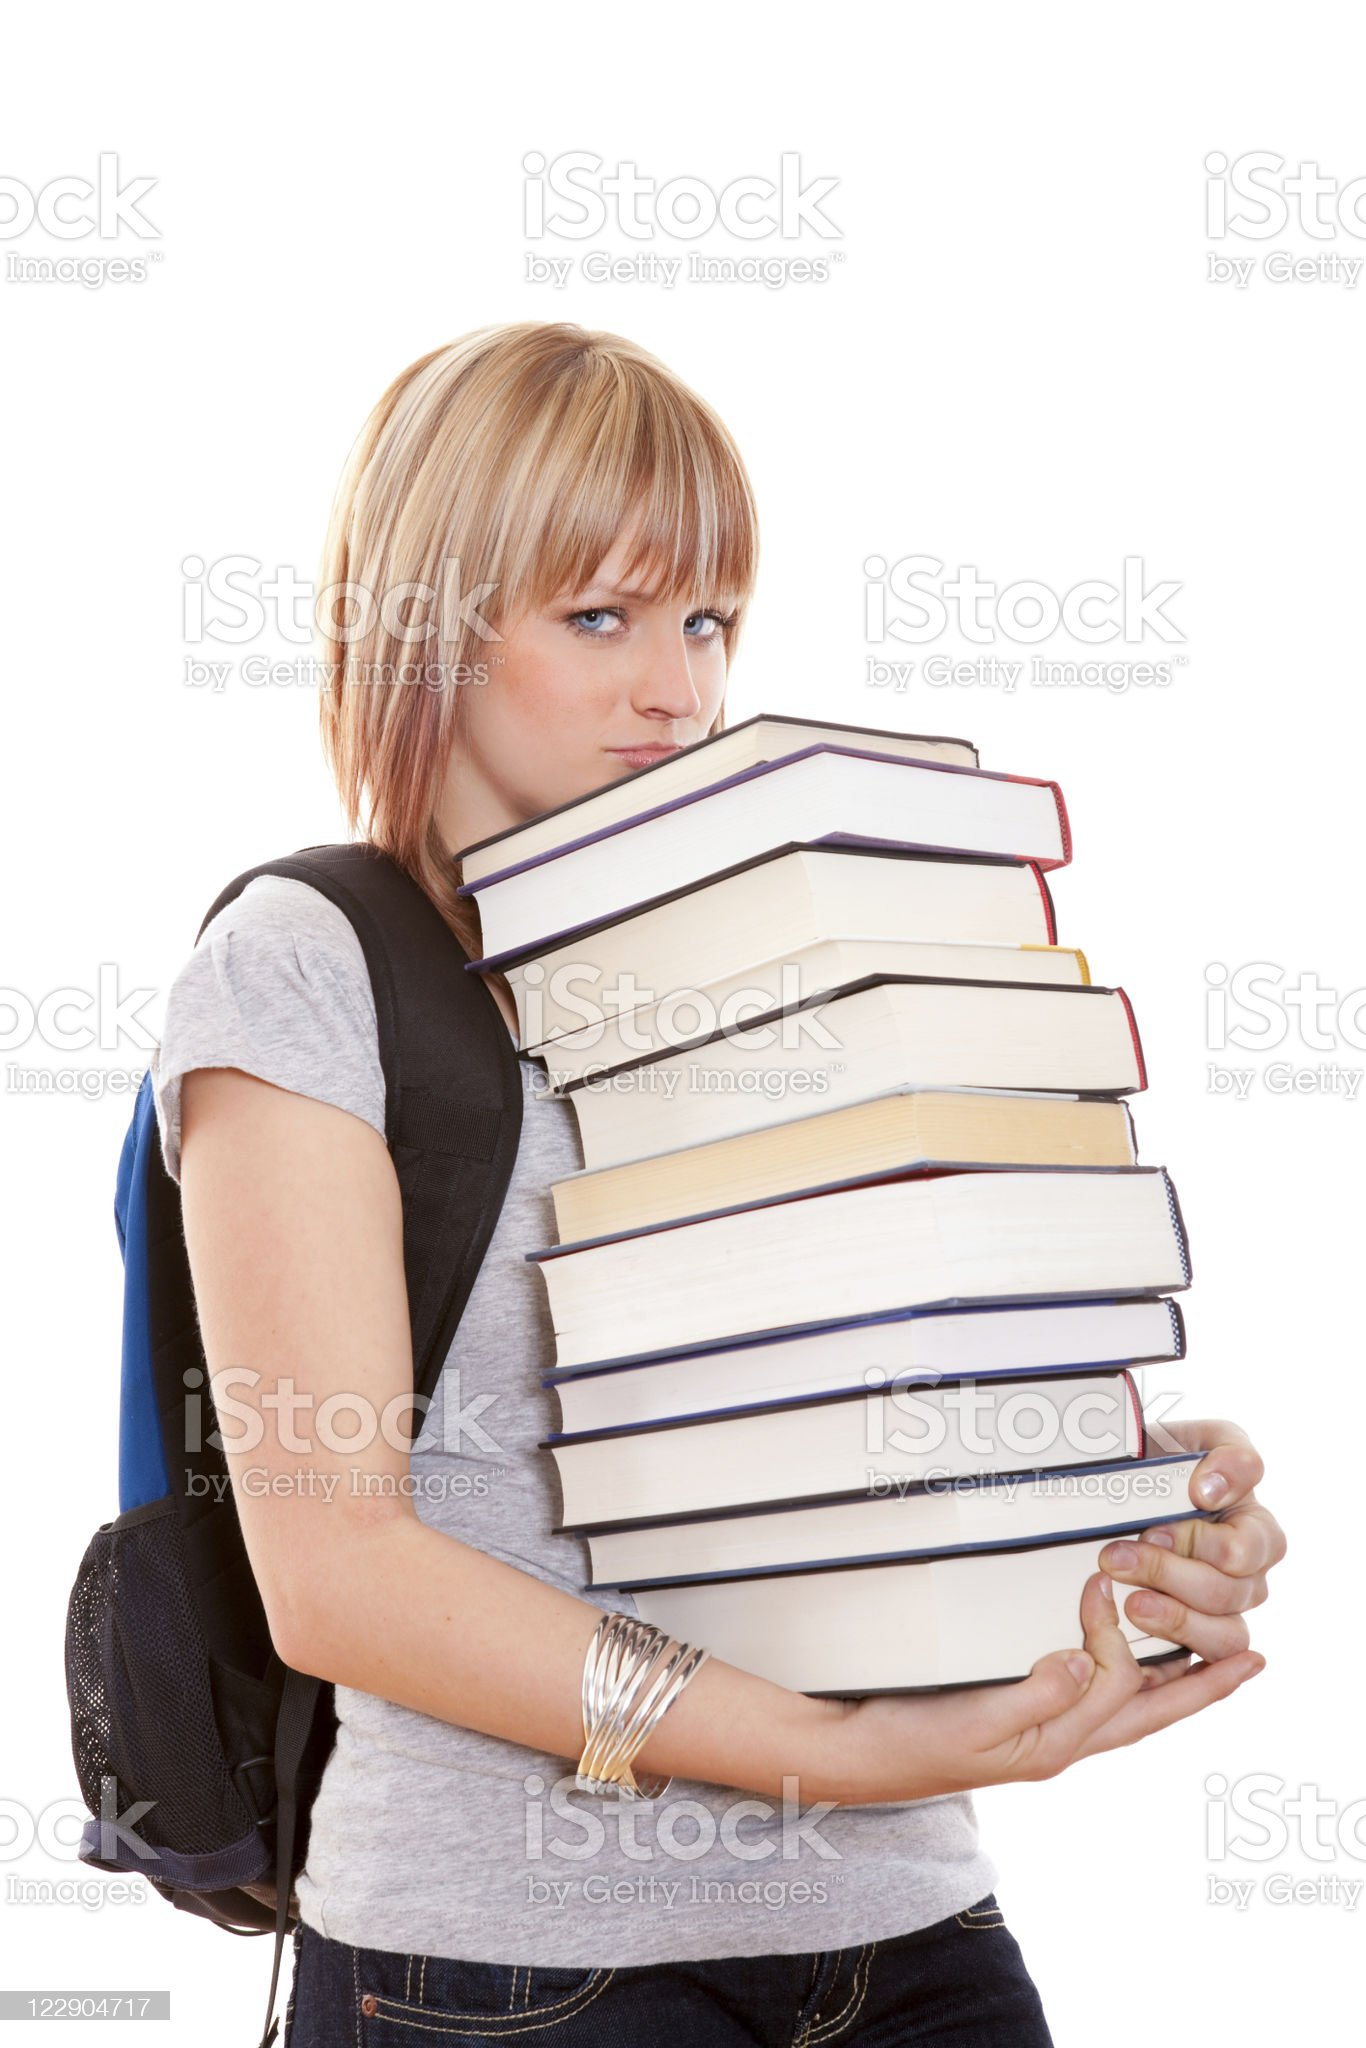 Pouting female holding a stack of books royalty-free stock photo